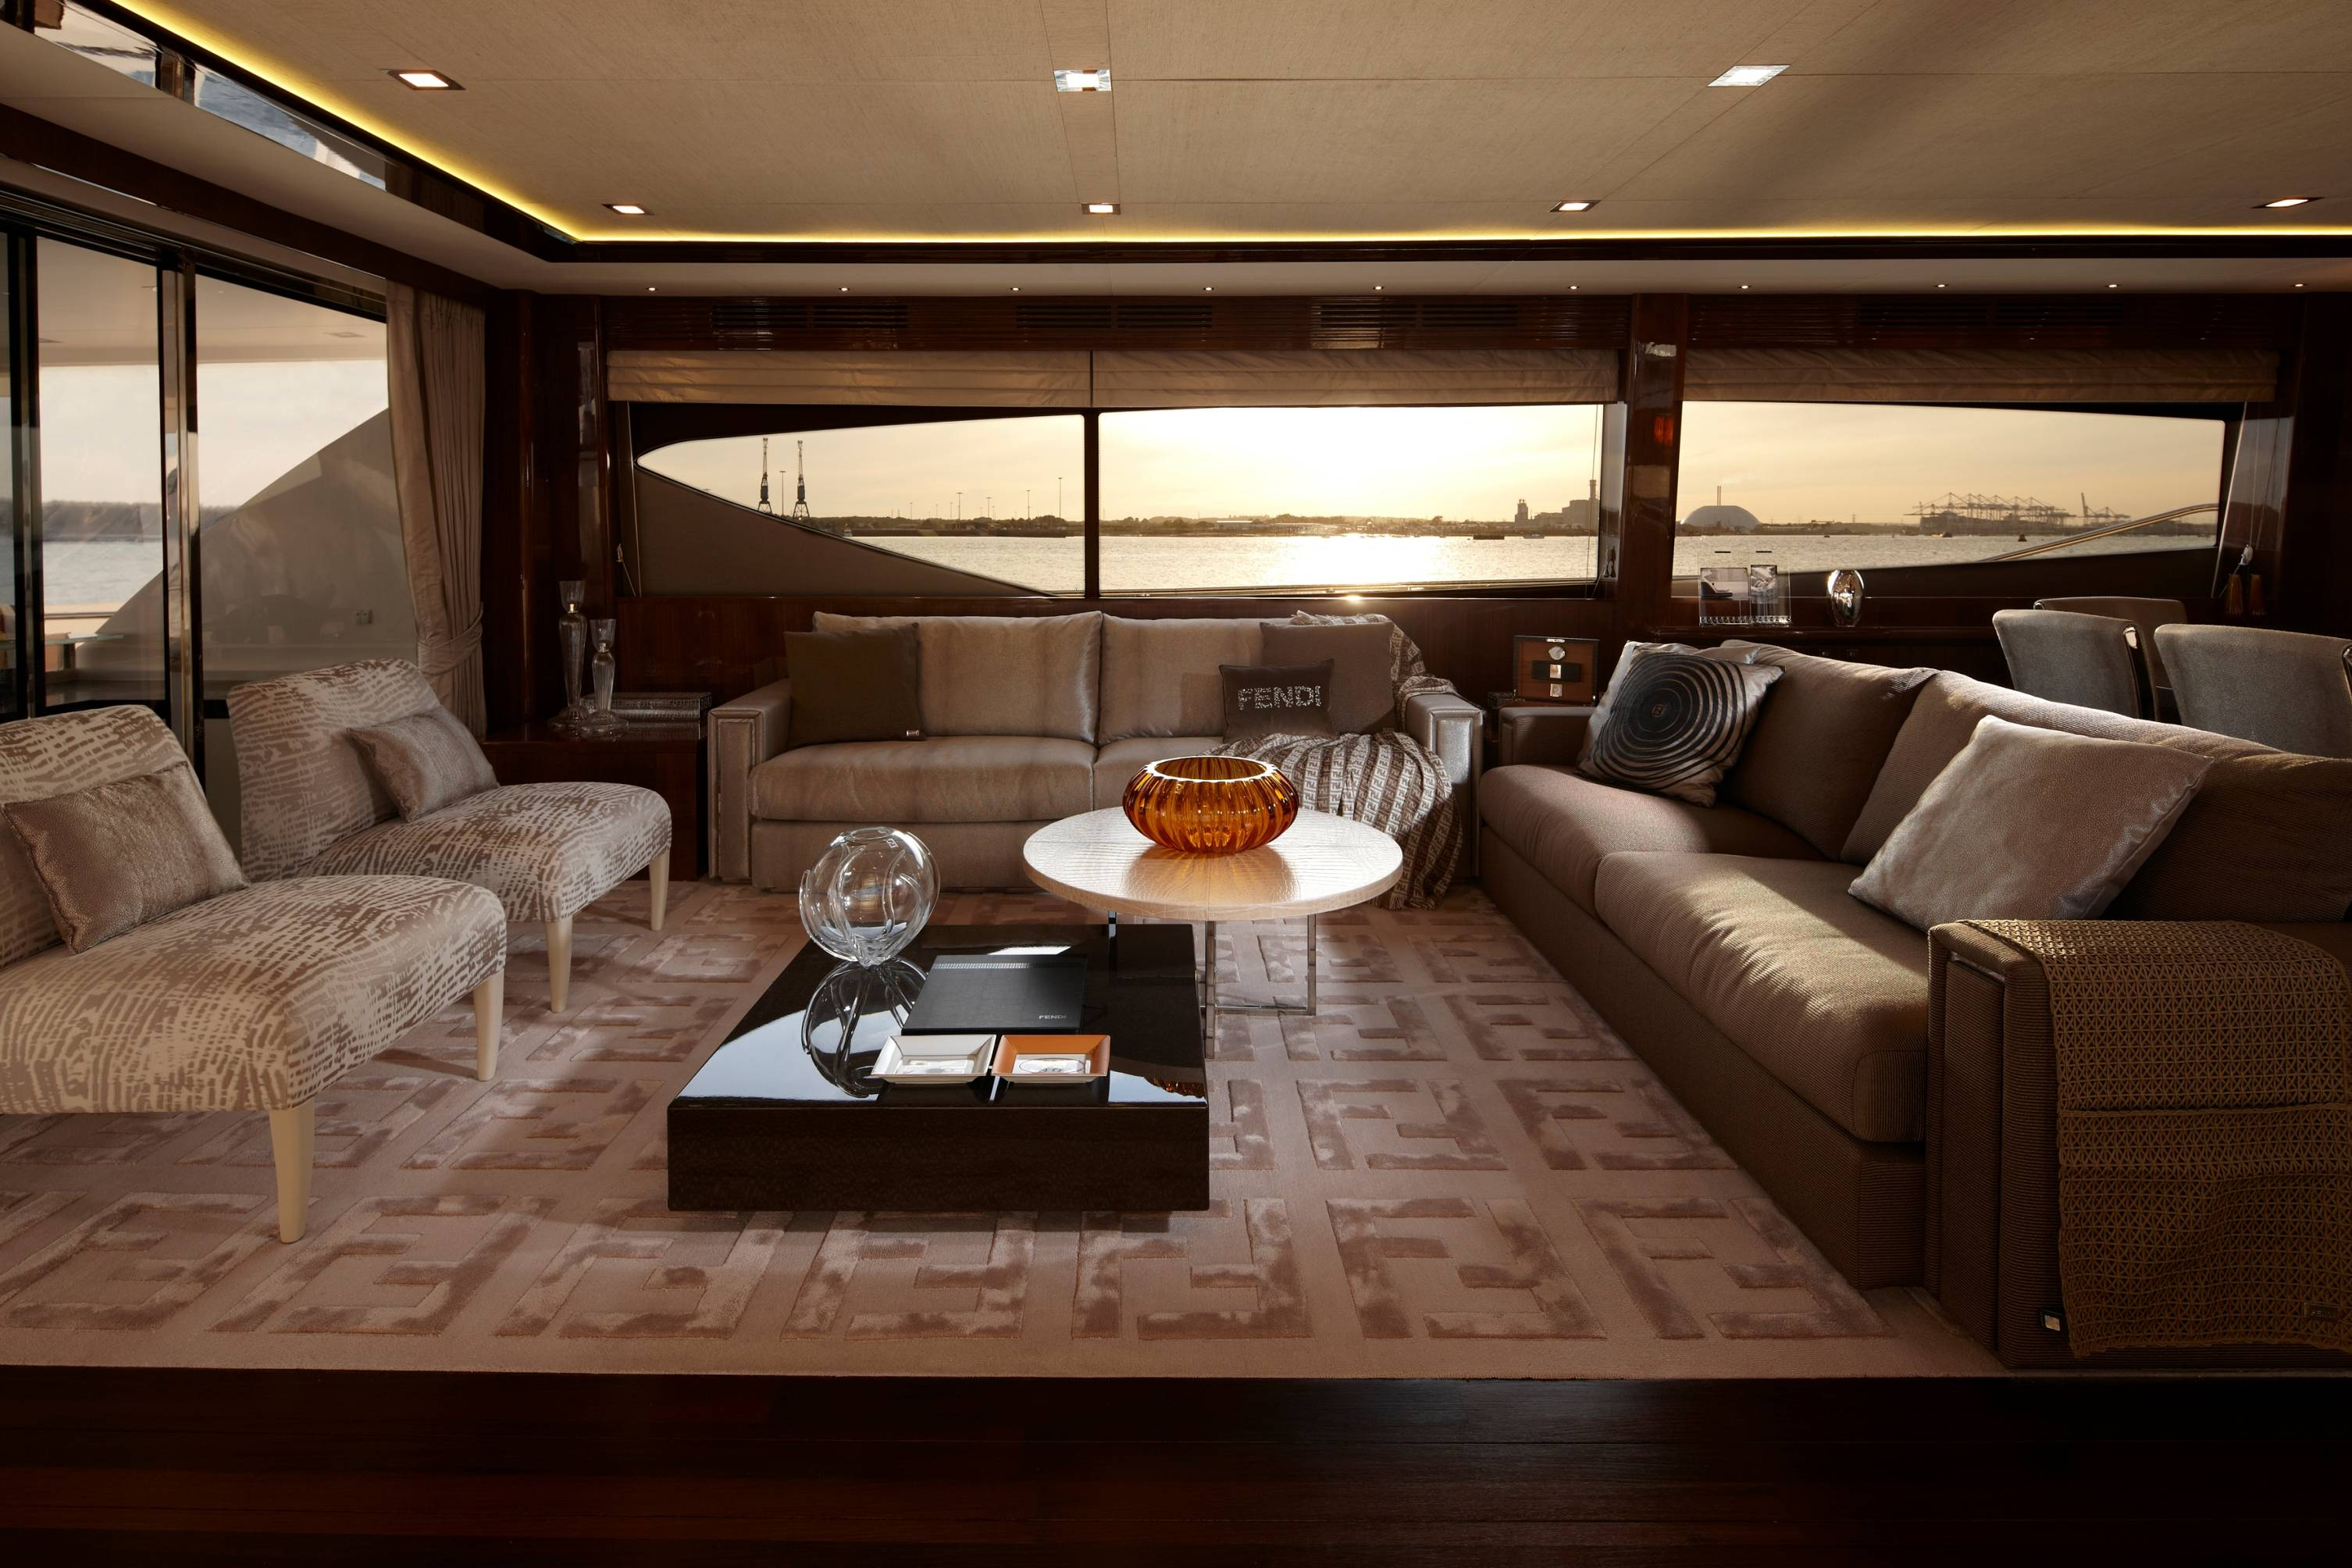 Princess Yachts International and Fendi Casa Present the Princess 98 Motor Yacht